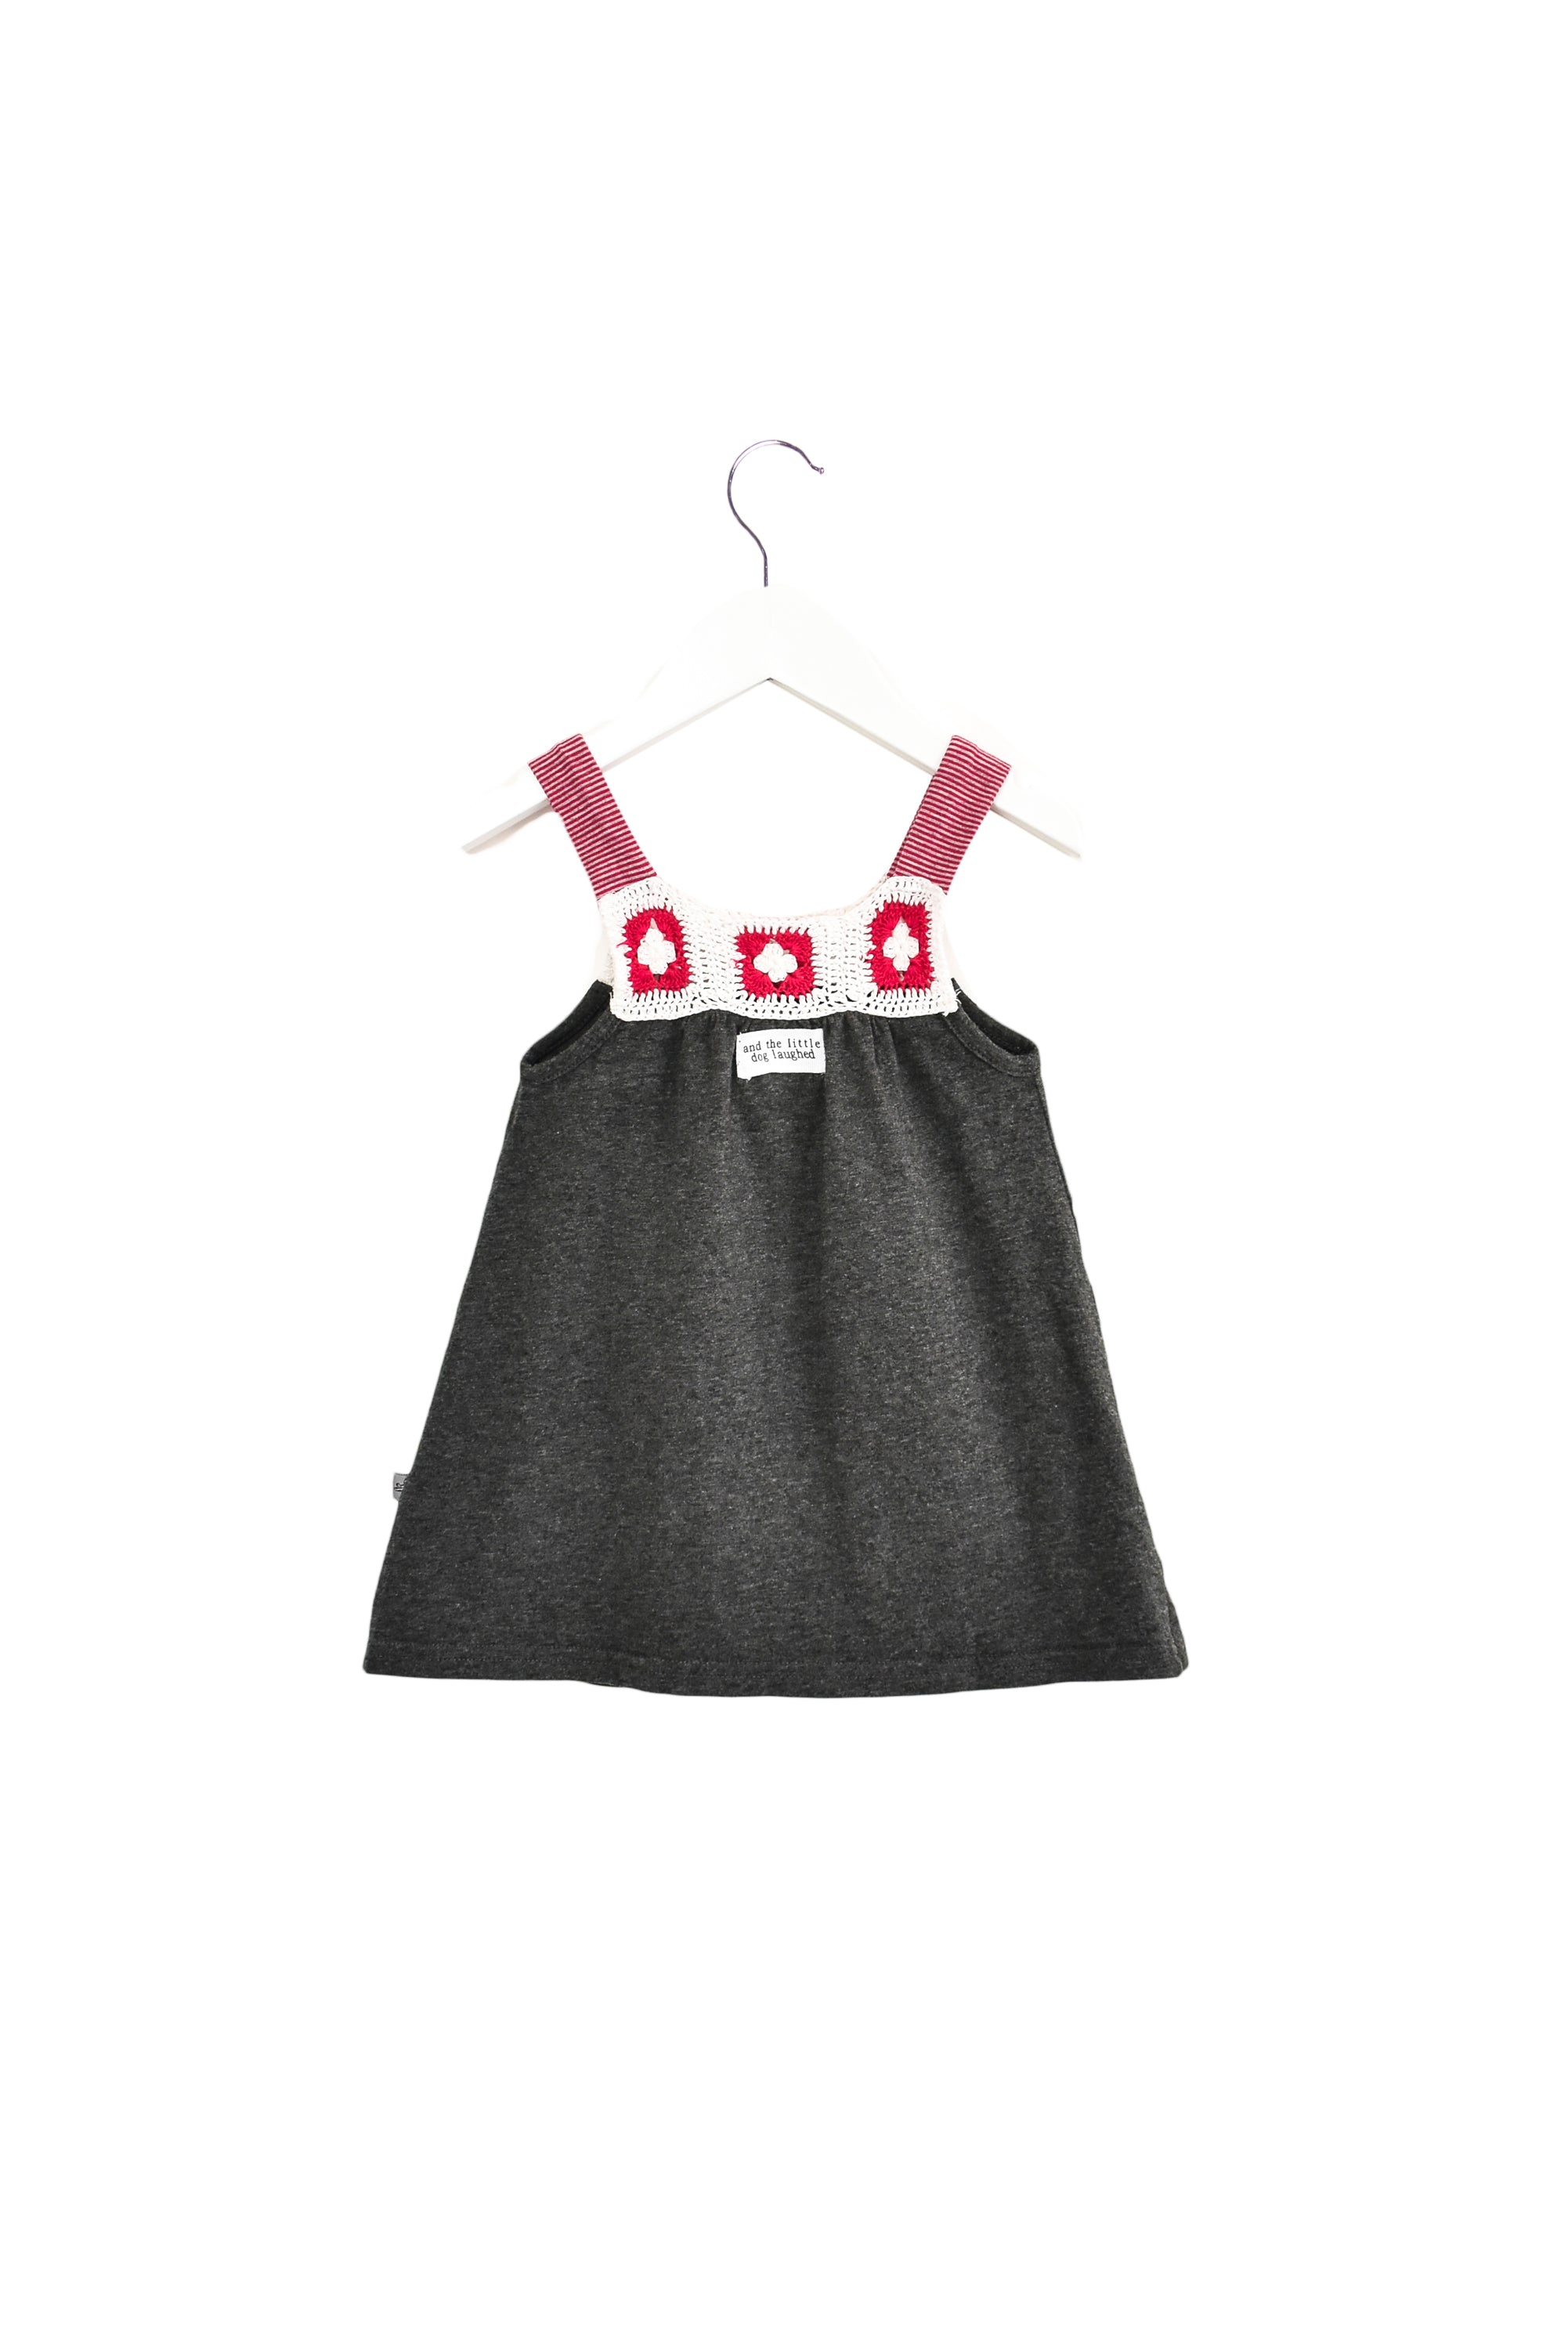 And The Little Dog Laughed at Retykle | Online Shopping Discount Baby & Kids Clothes Hong Kong